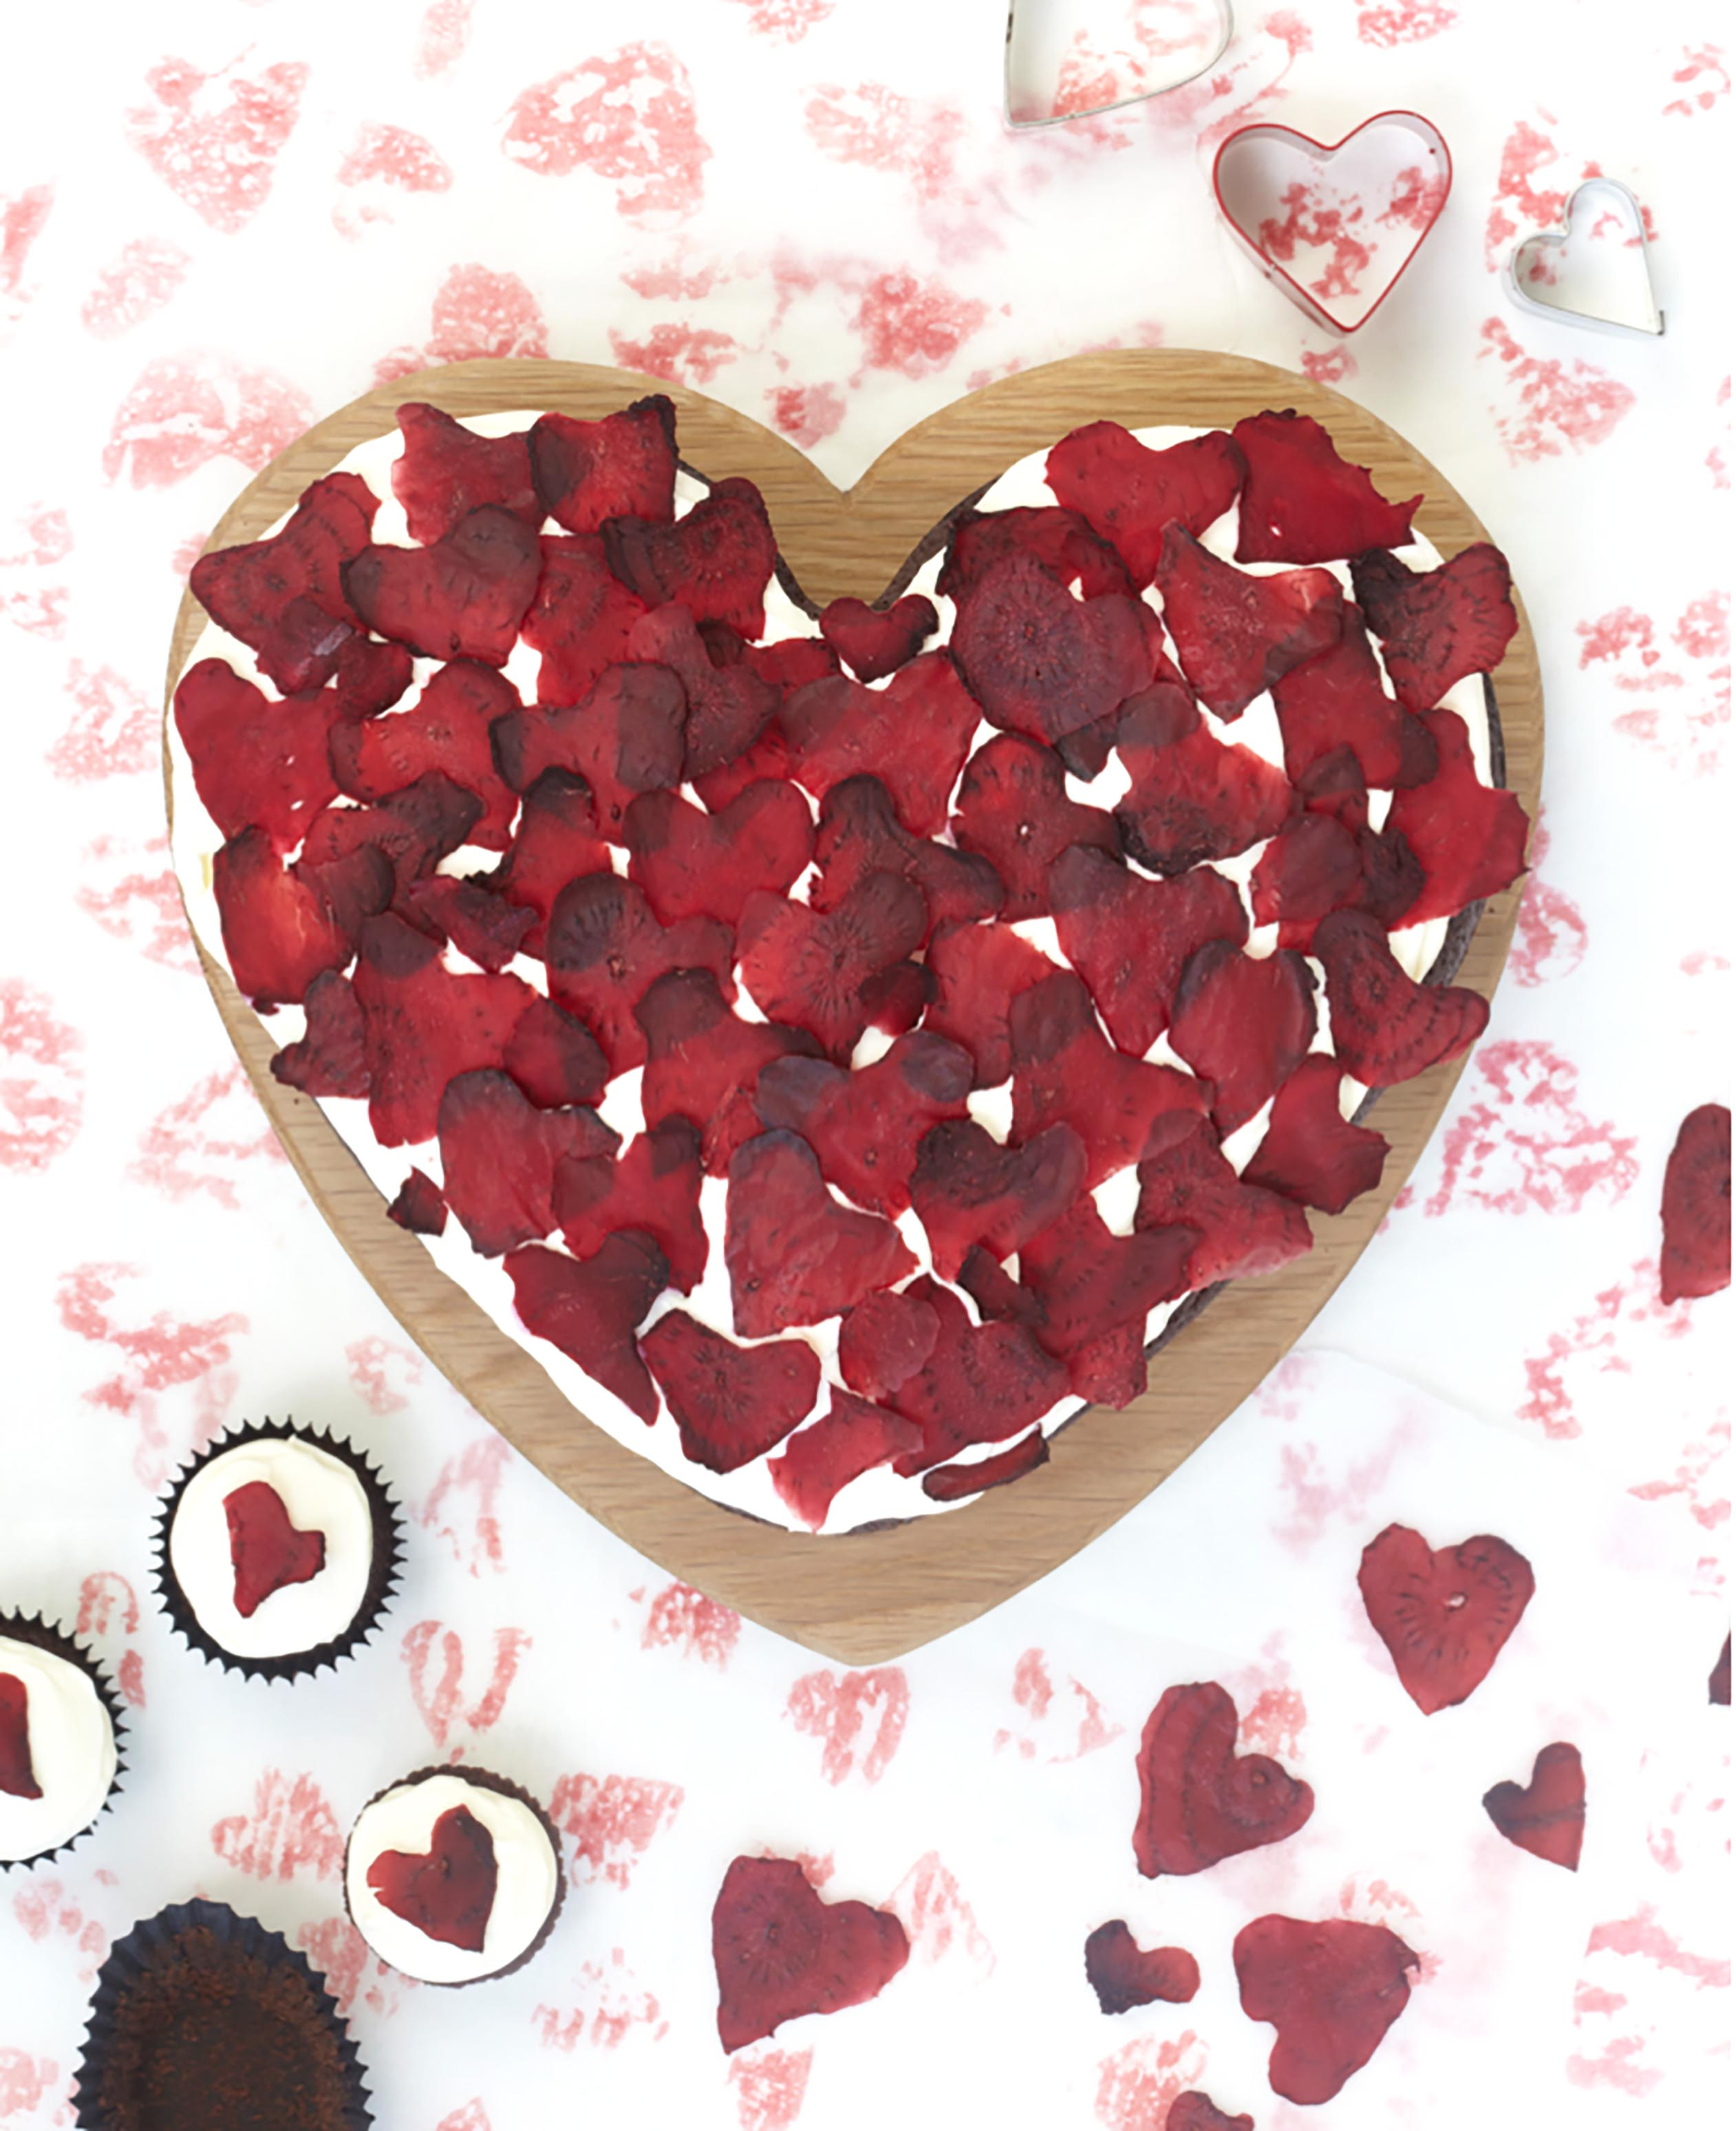 beetroot heart